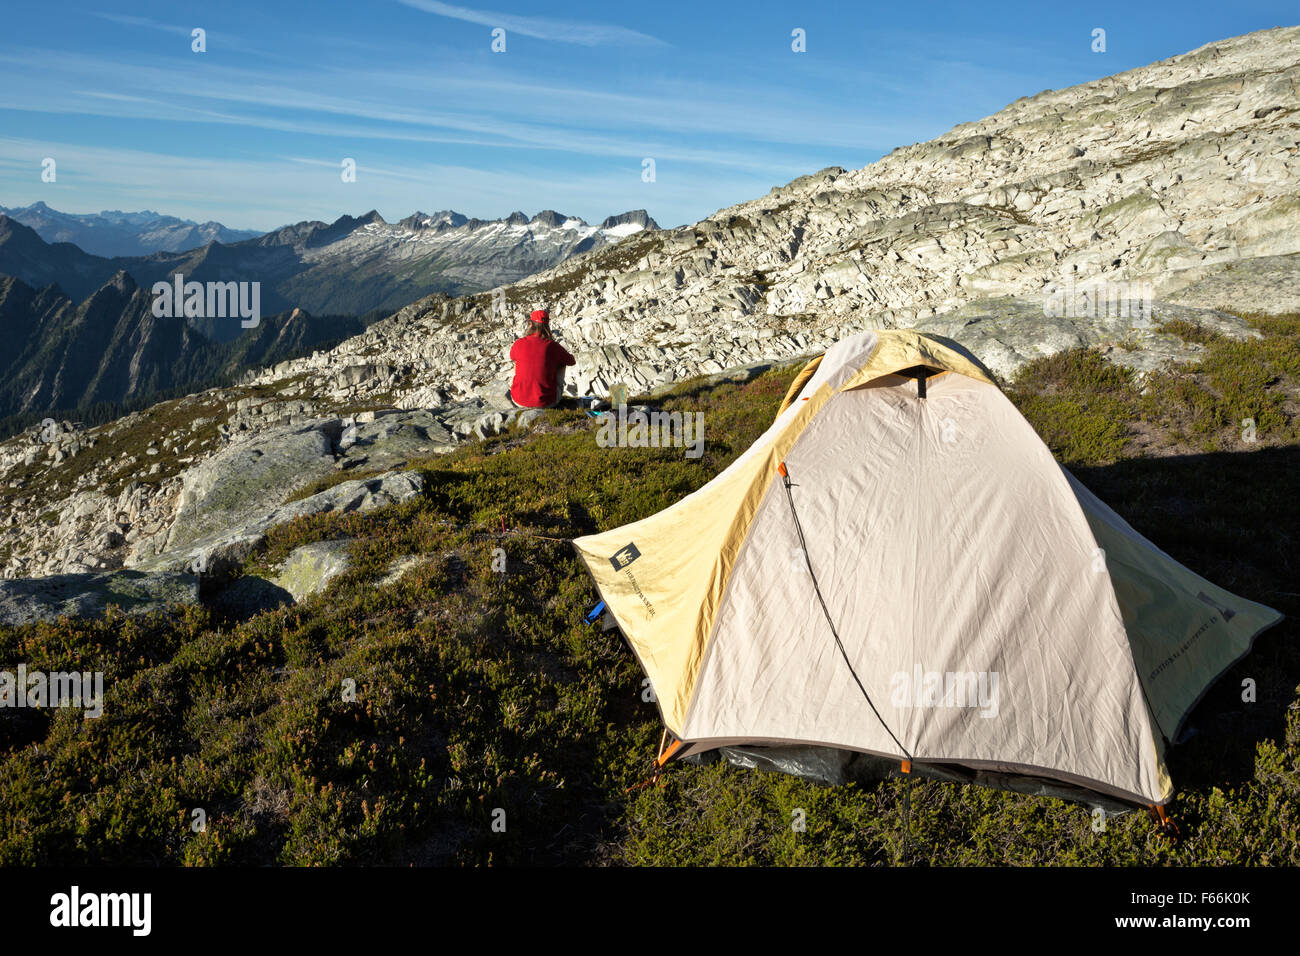 WASHINGTON - Campsite on side of the Hidden Lake Peaks in North Cascades portion of the Mount Baker-Snoqualmie National - Stock Image